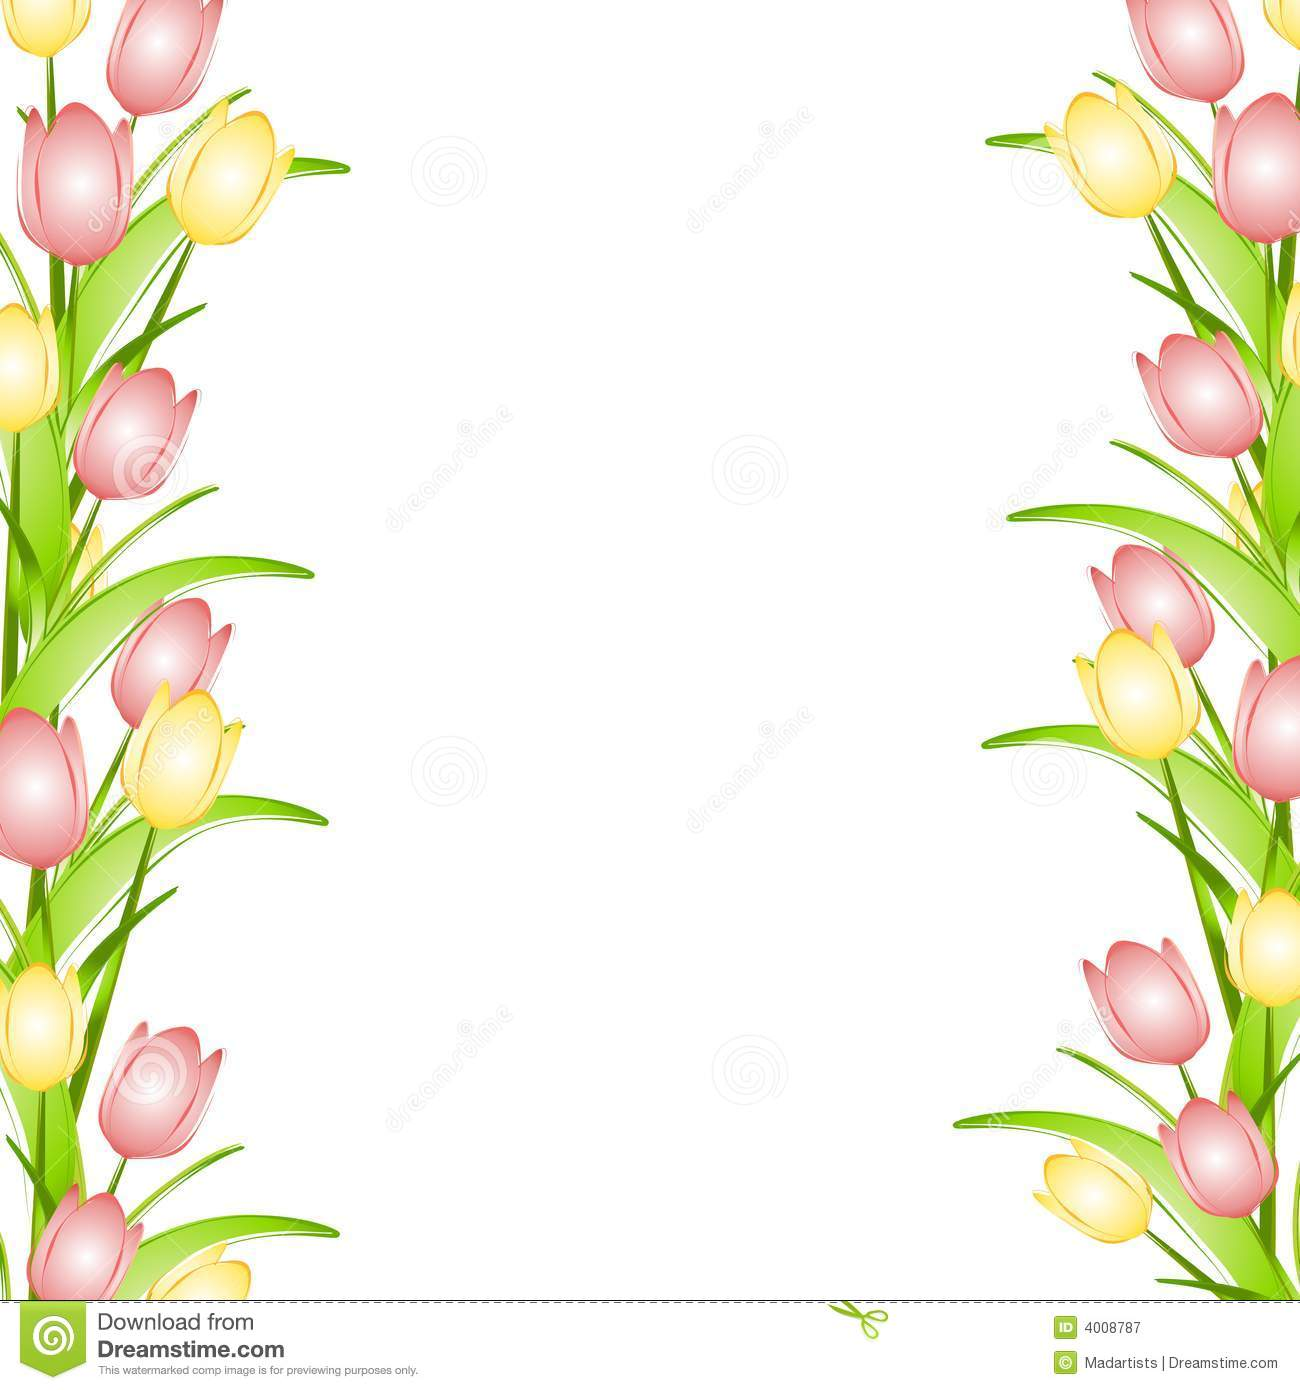 Free spring flower clipart free download best free spring flower 1300x1390 spring flower border clipart mightylinksfo